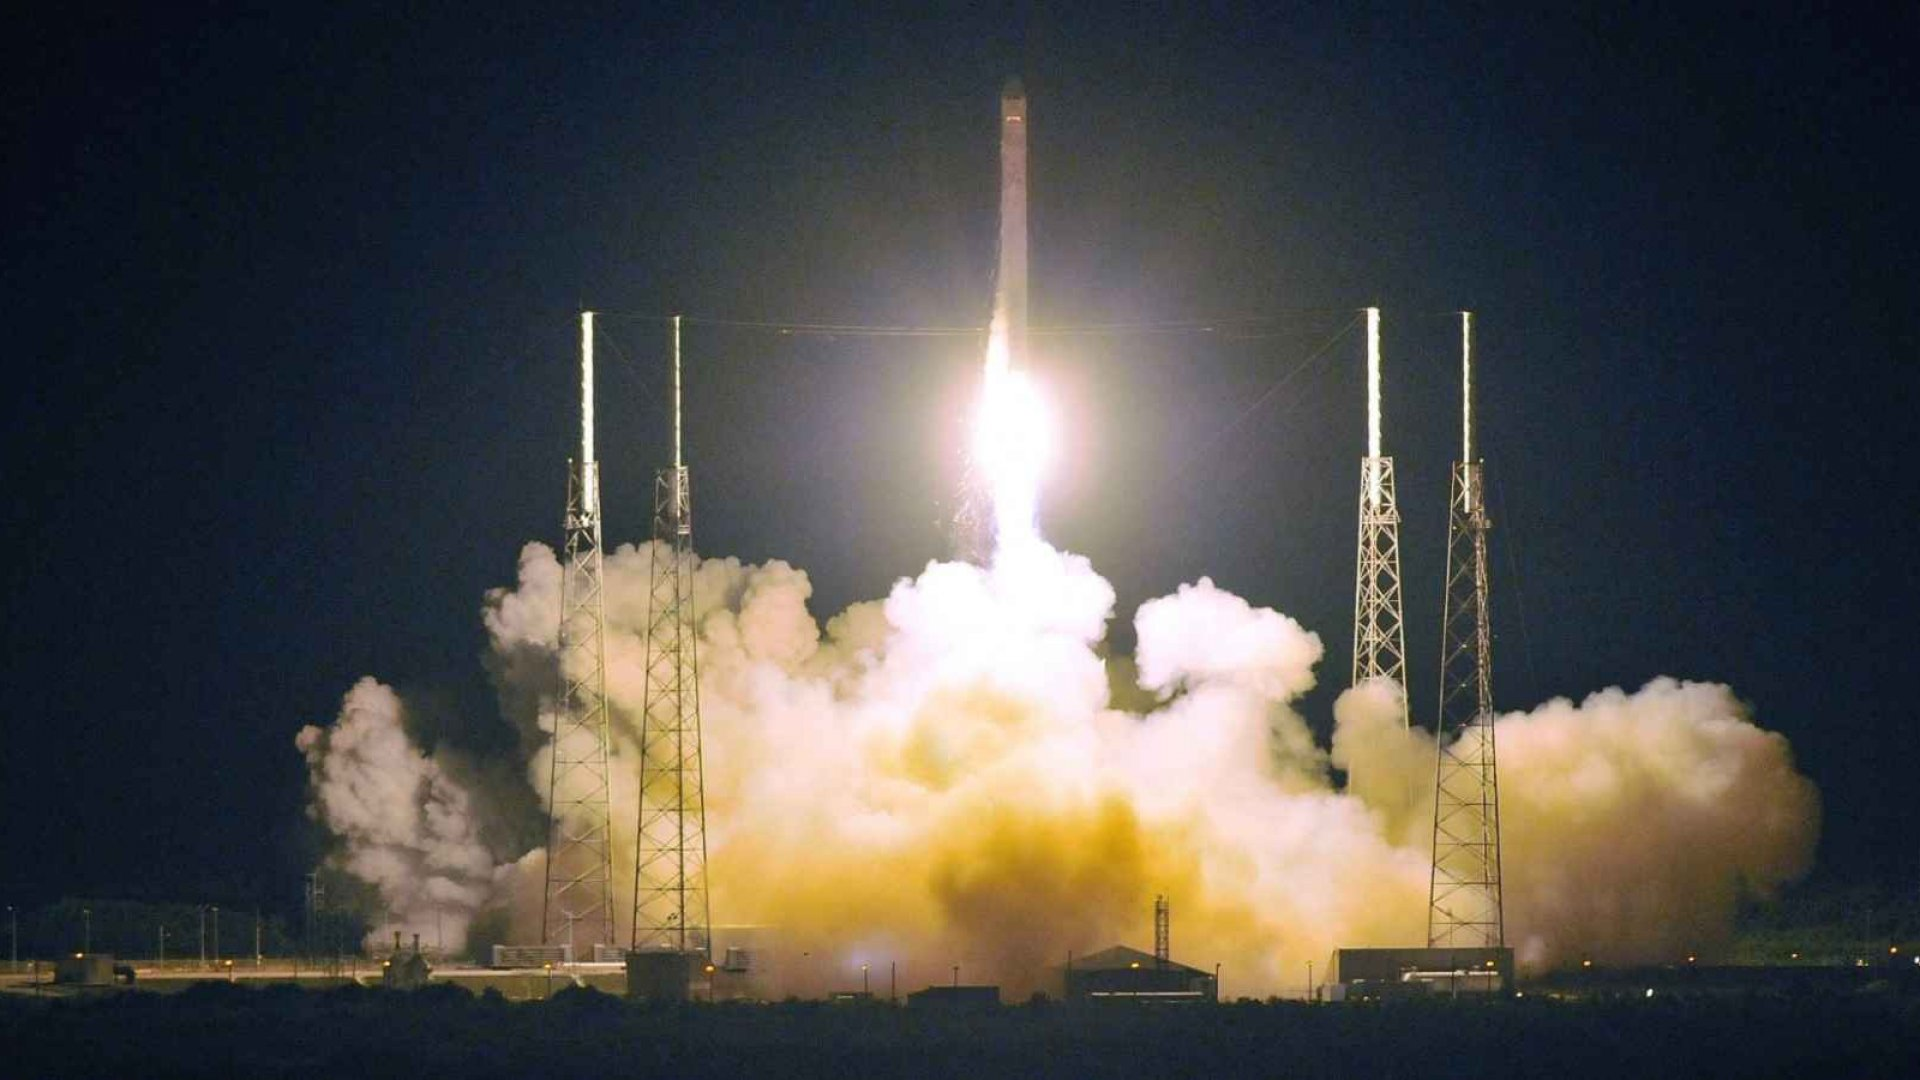 SpaceX's Falcon 9 rocket takes off from Cape Canaveral.